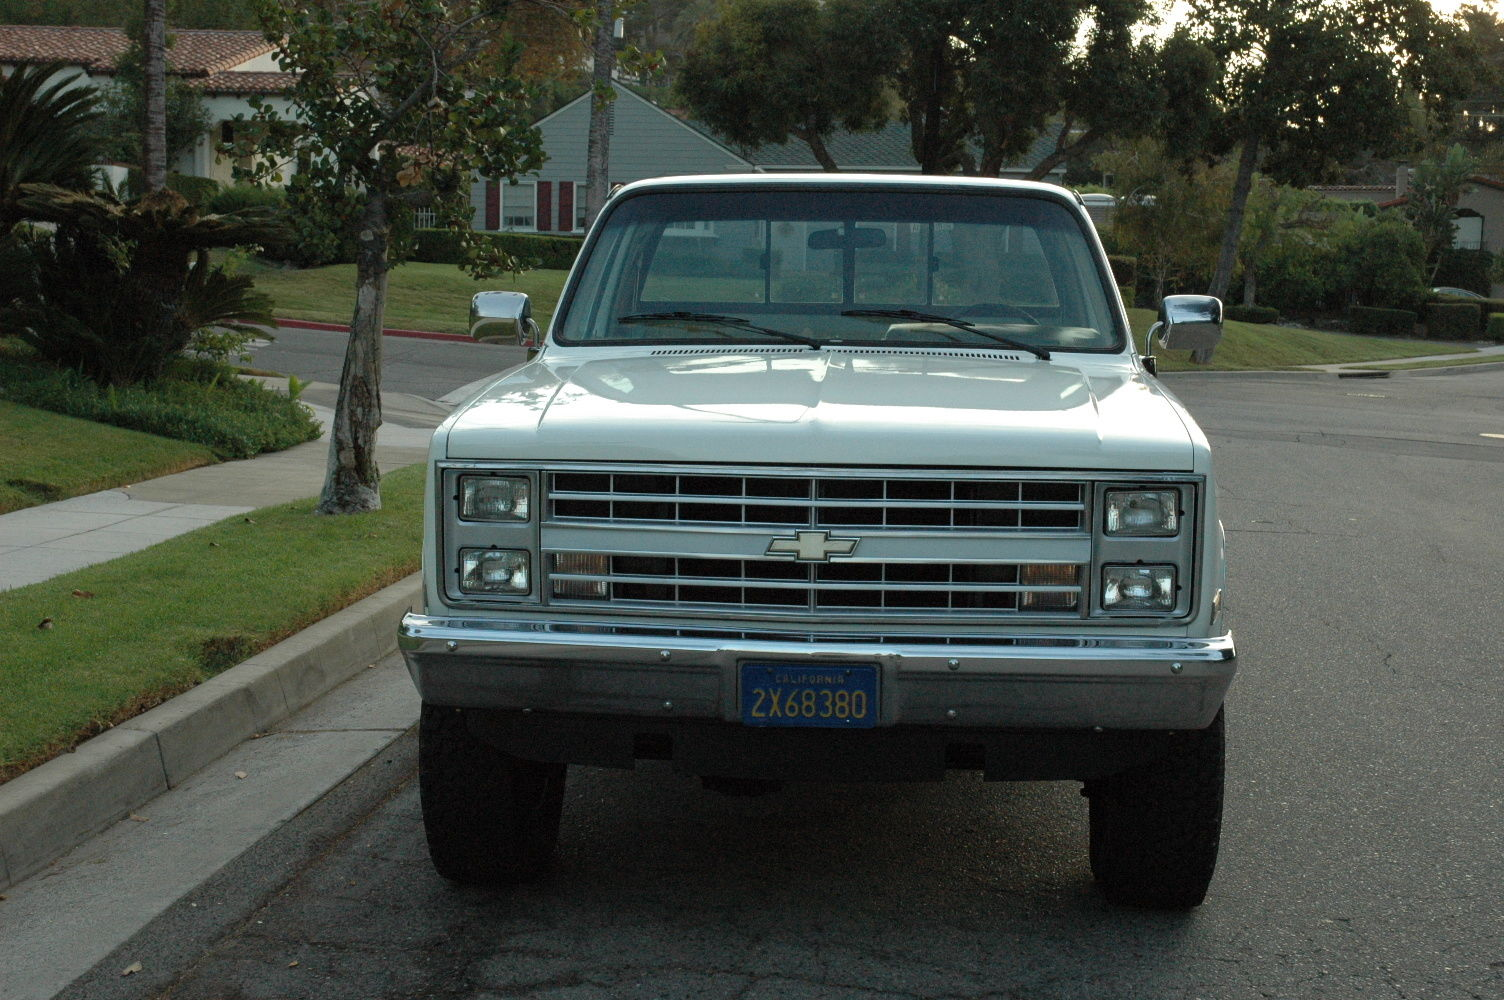 1987 chevy silverado 3 4 ton 4x4 fuel injection truck classic chevrolet blazer 1987 for sale. Black Bedroom Furniture Sets. Home Design Ideas